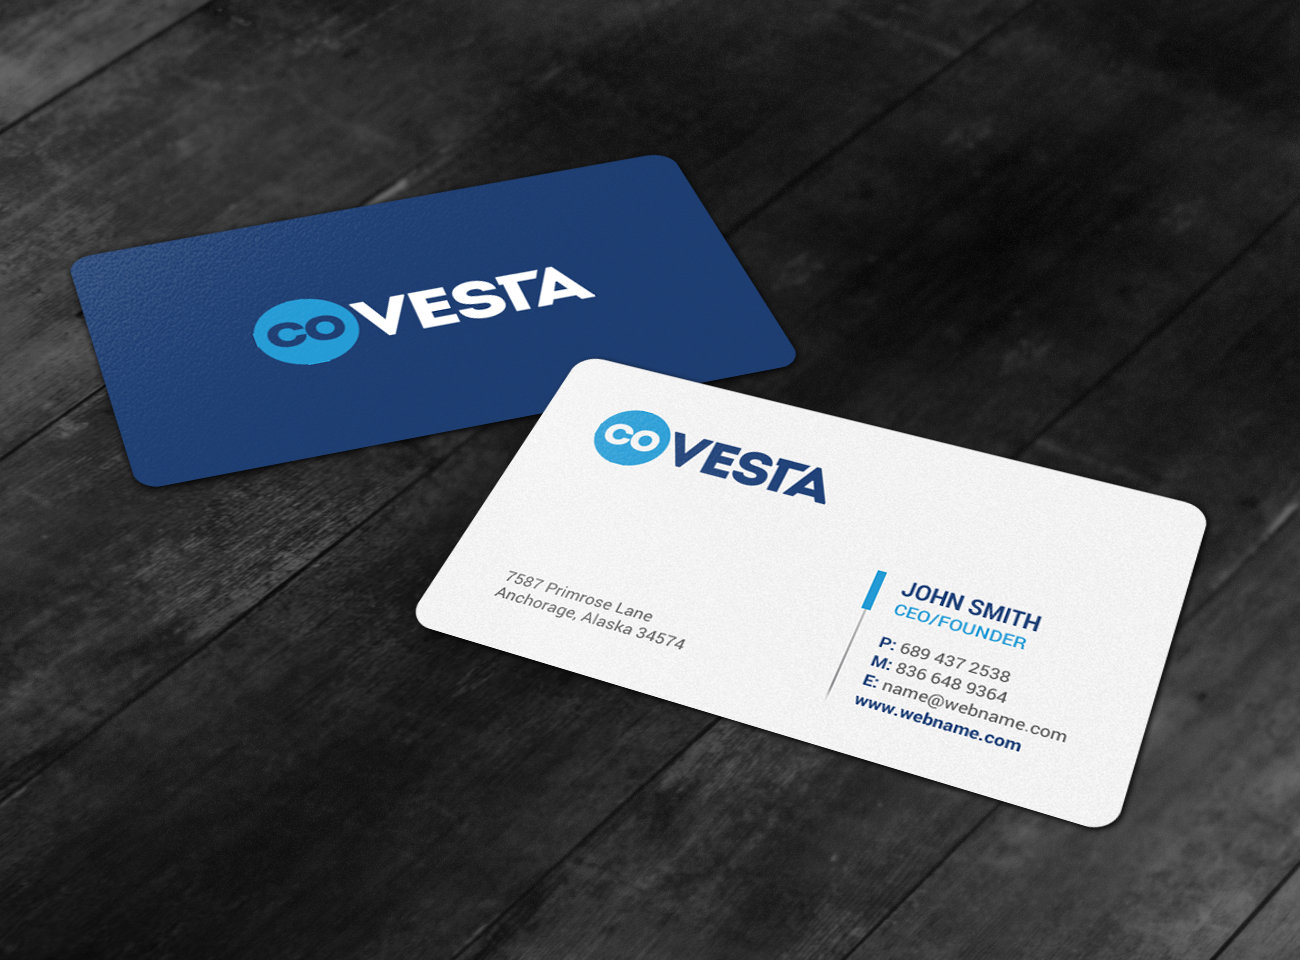 Elegant playful financial business card design for covesta by business card design by chandrayaaneative for covesta design 14826951 colourmoves